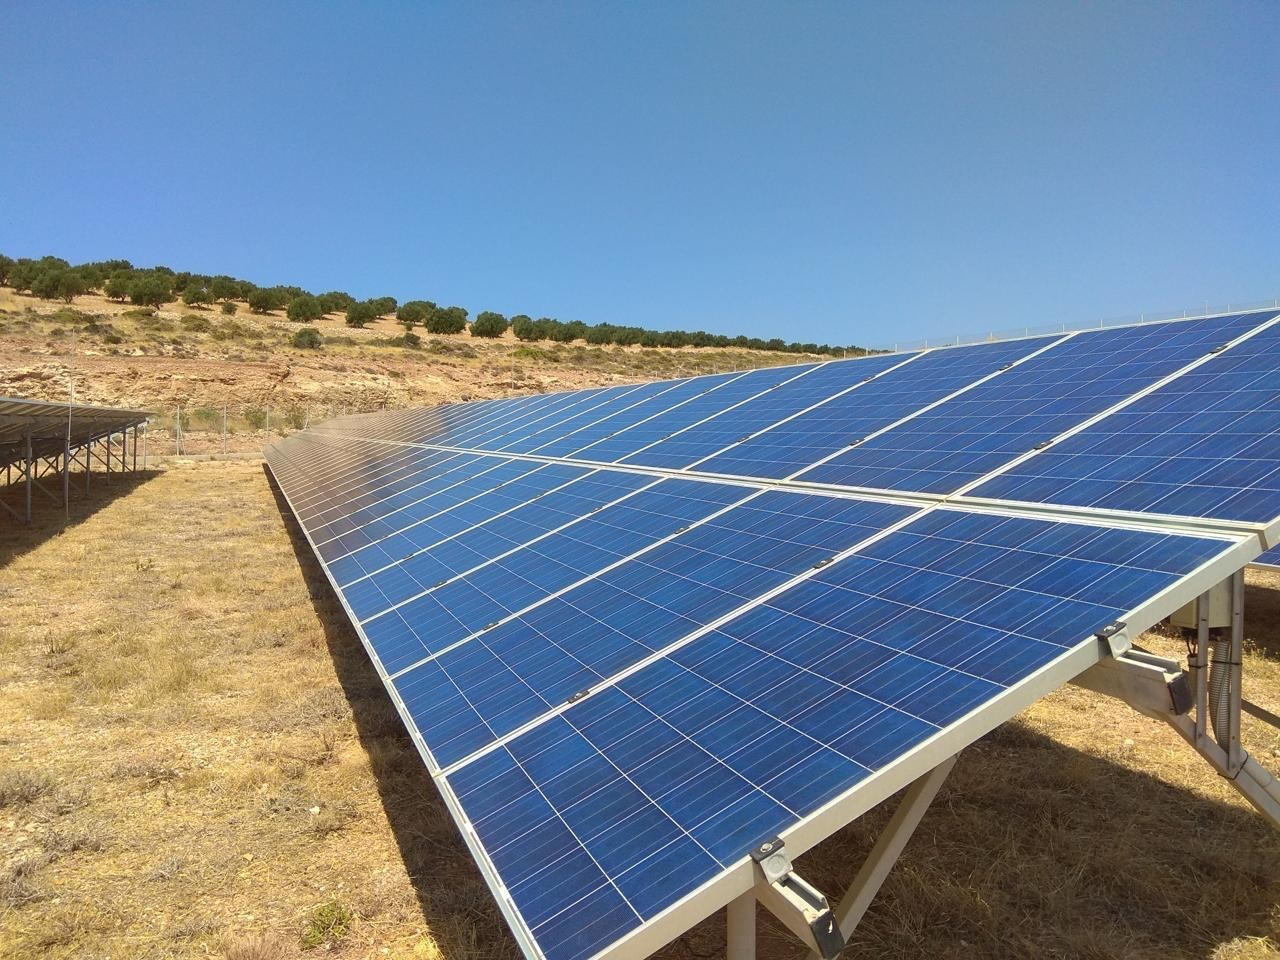 PPC Renewables aims to reach 1.1 - 1.4GW of installed solar PV capacity in Greece's Western Macedonia region by 2024. Image: PPC Renewables.